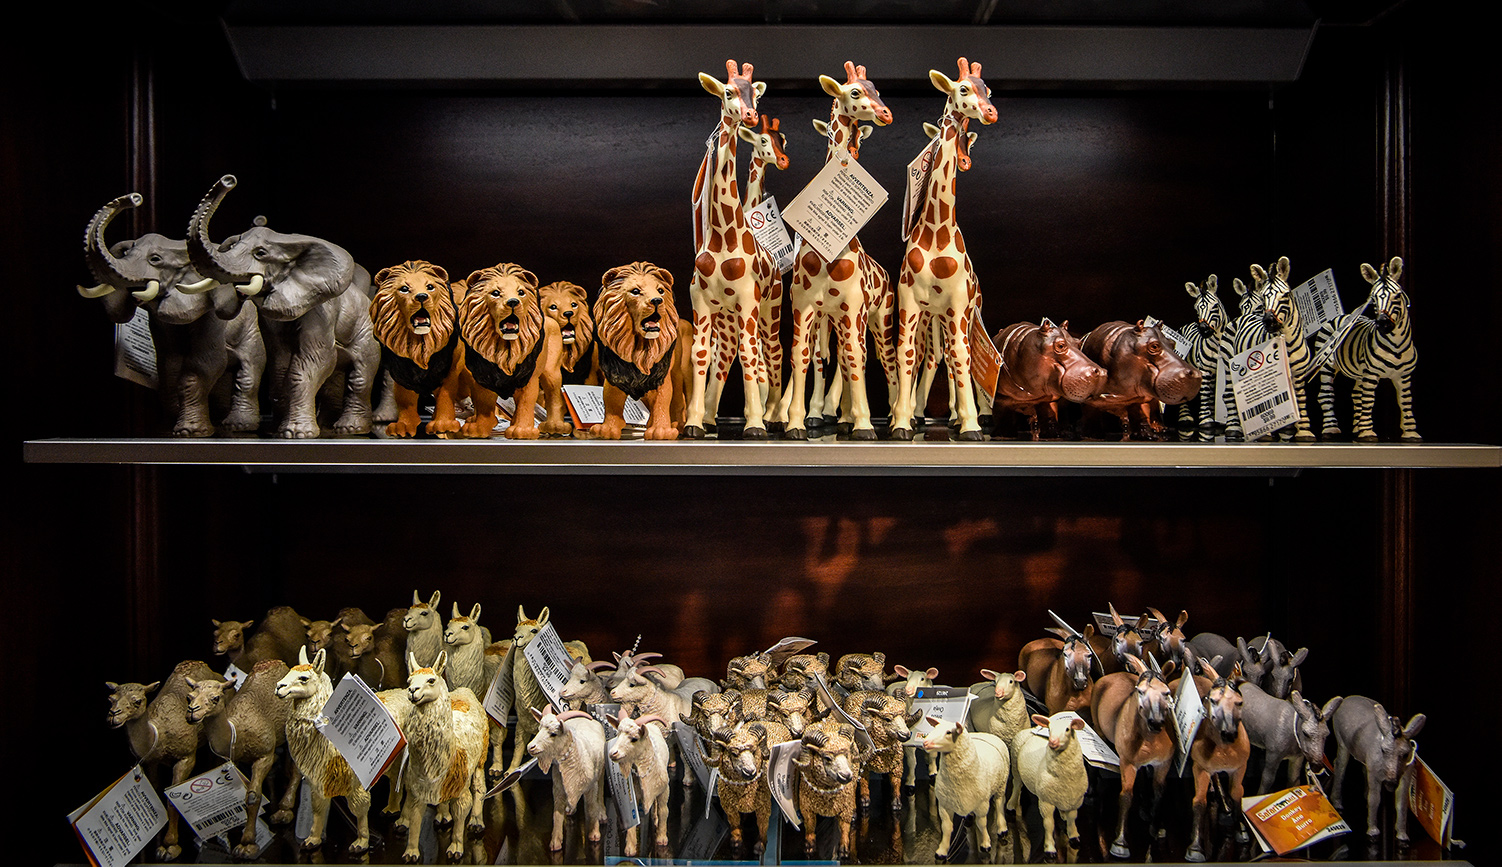 Biblically themed toys at the gift shop for the Museum of the Bible. Bill O'Leary/The Washington Post via Getty Images.